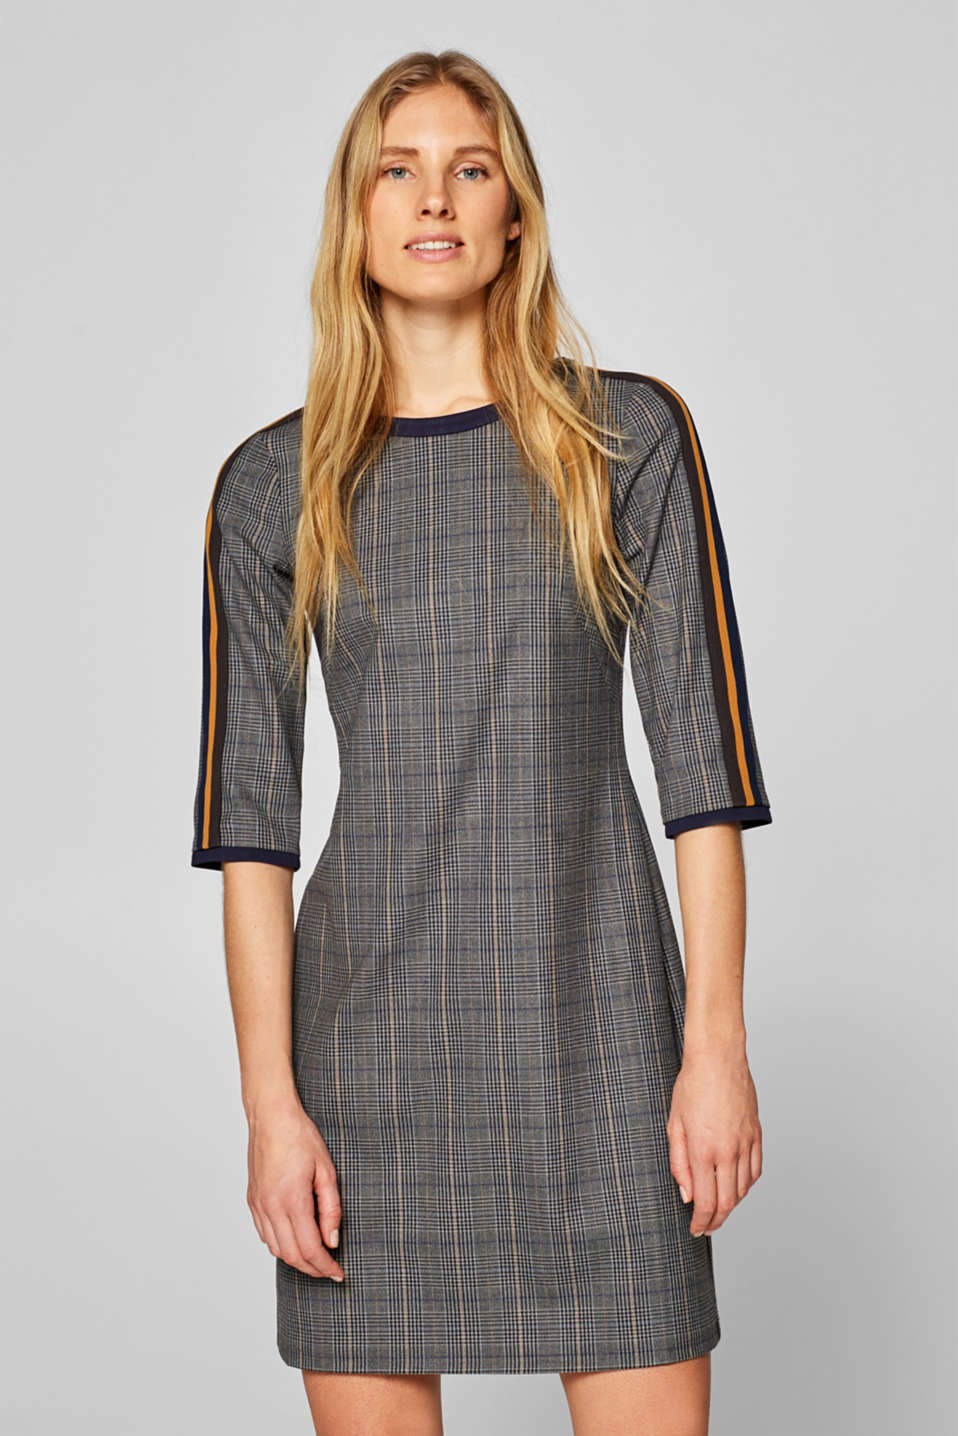 Esprit - Checked stretch dress with racing stripes